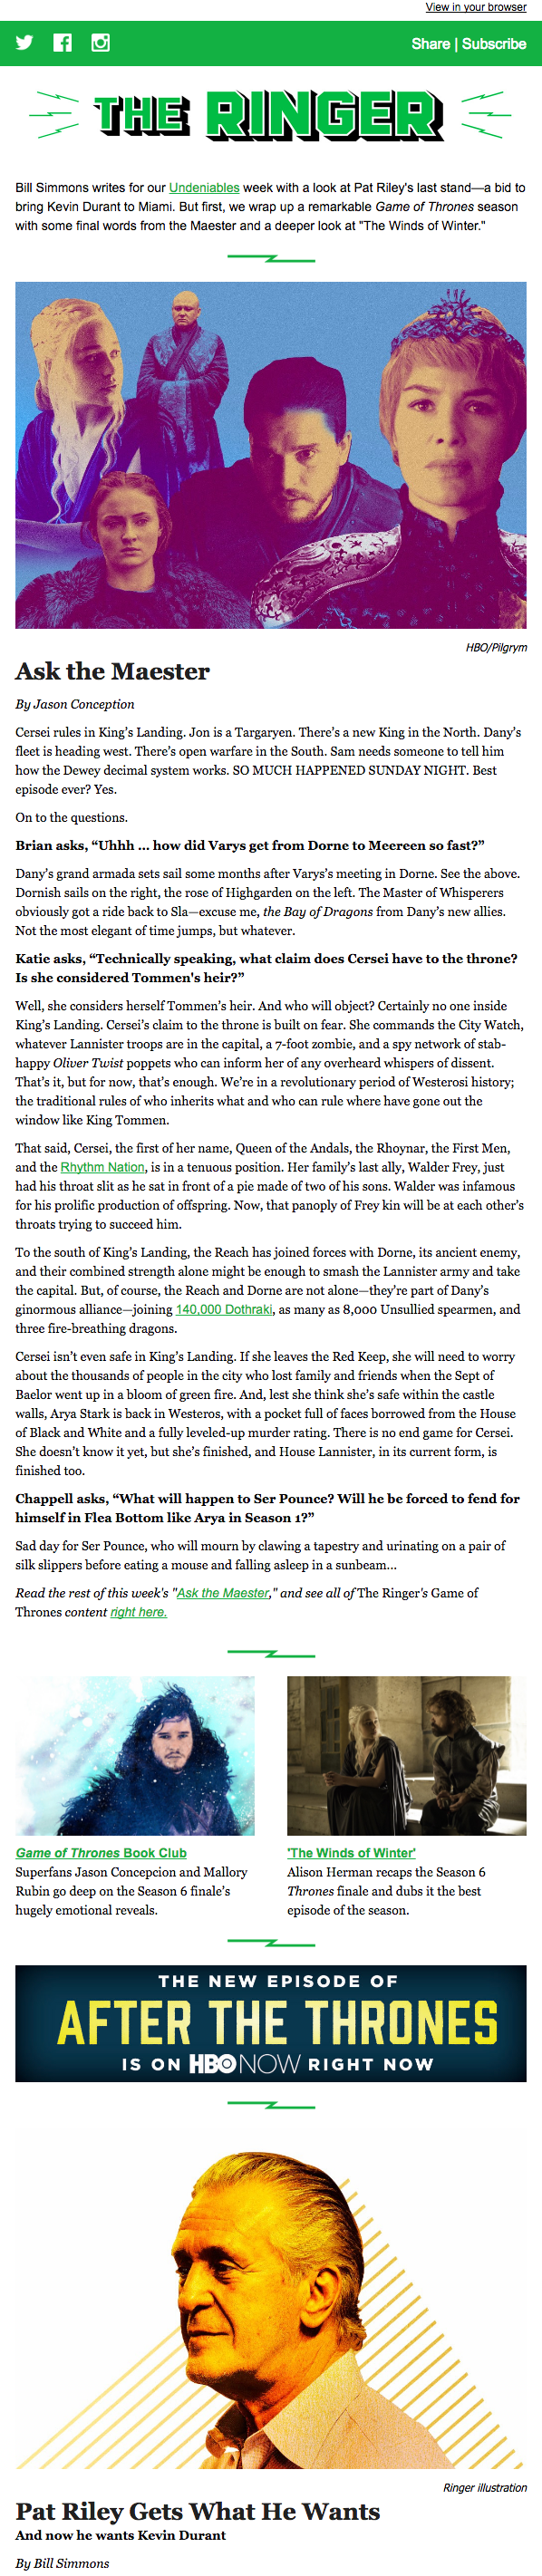 the-ringer-newsletter-example.png